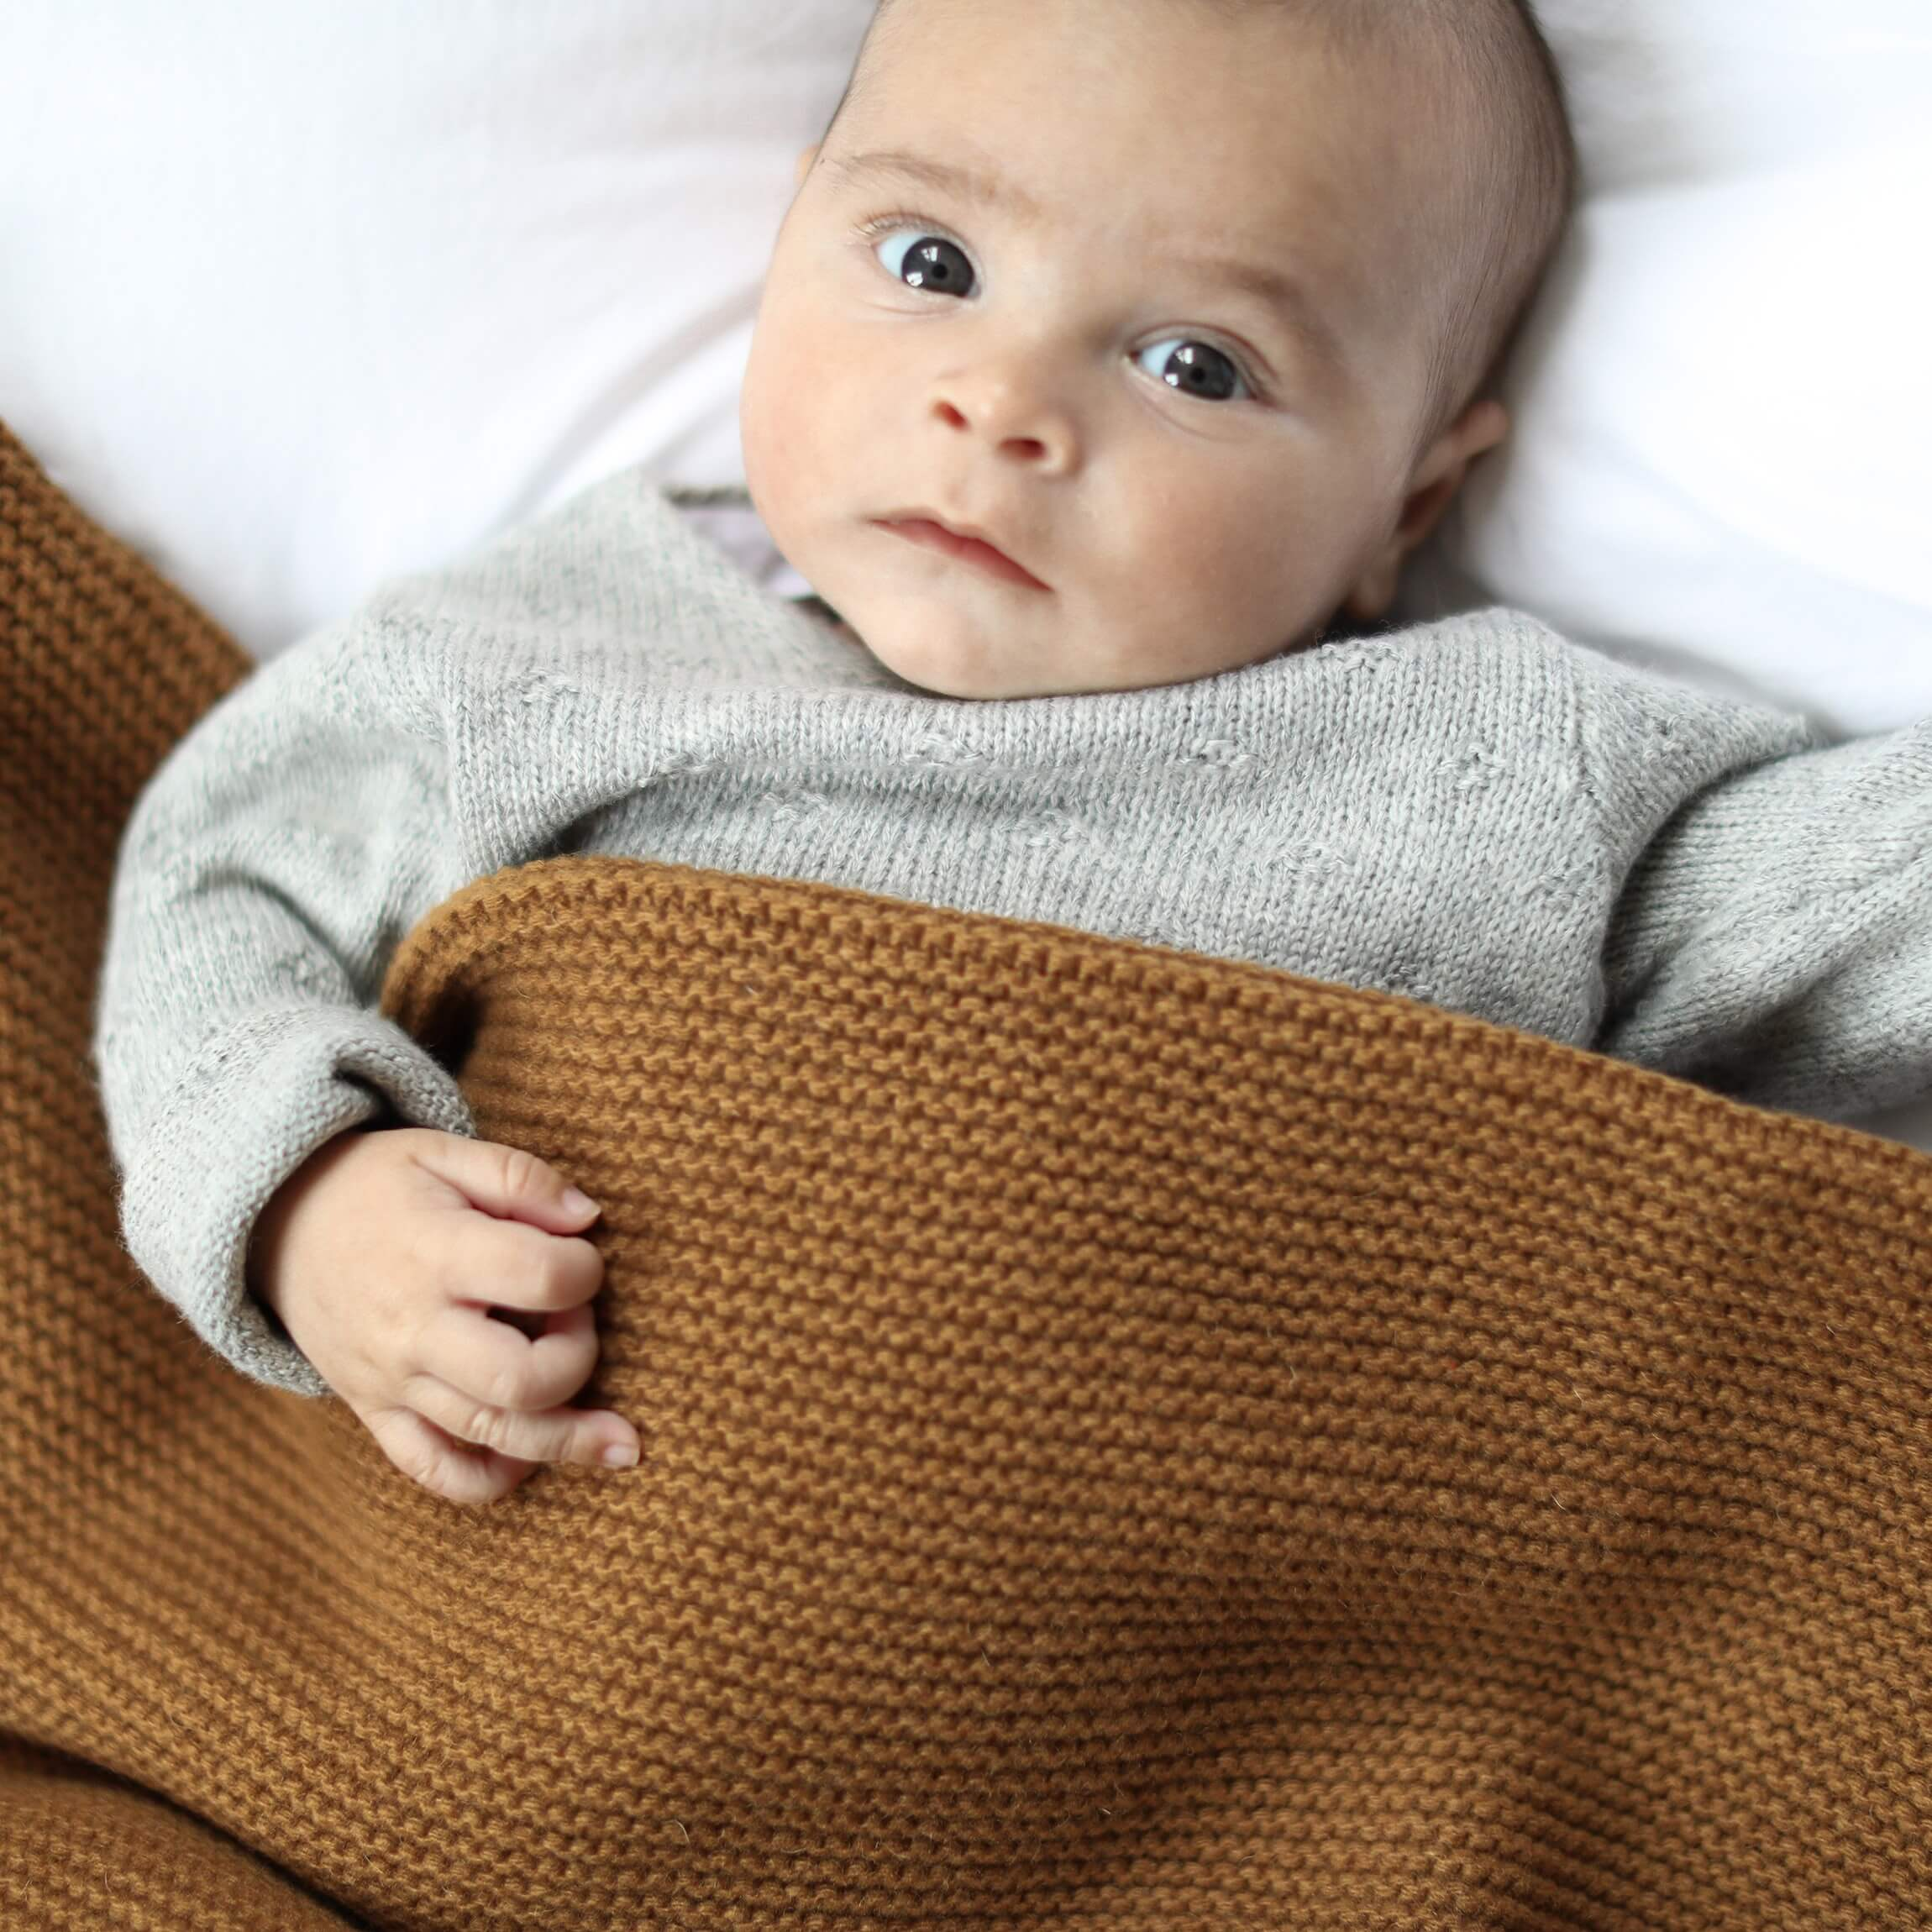 shop Baby blanket - Knit blanket